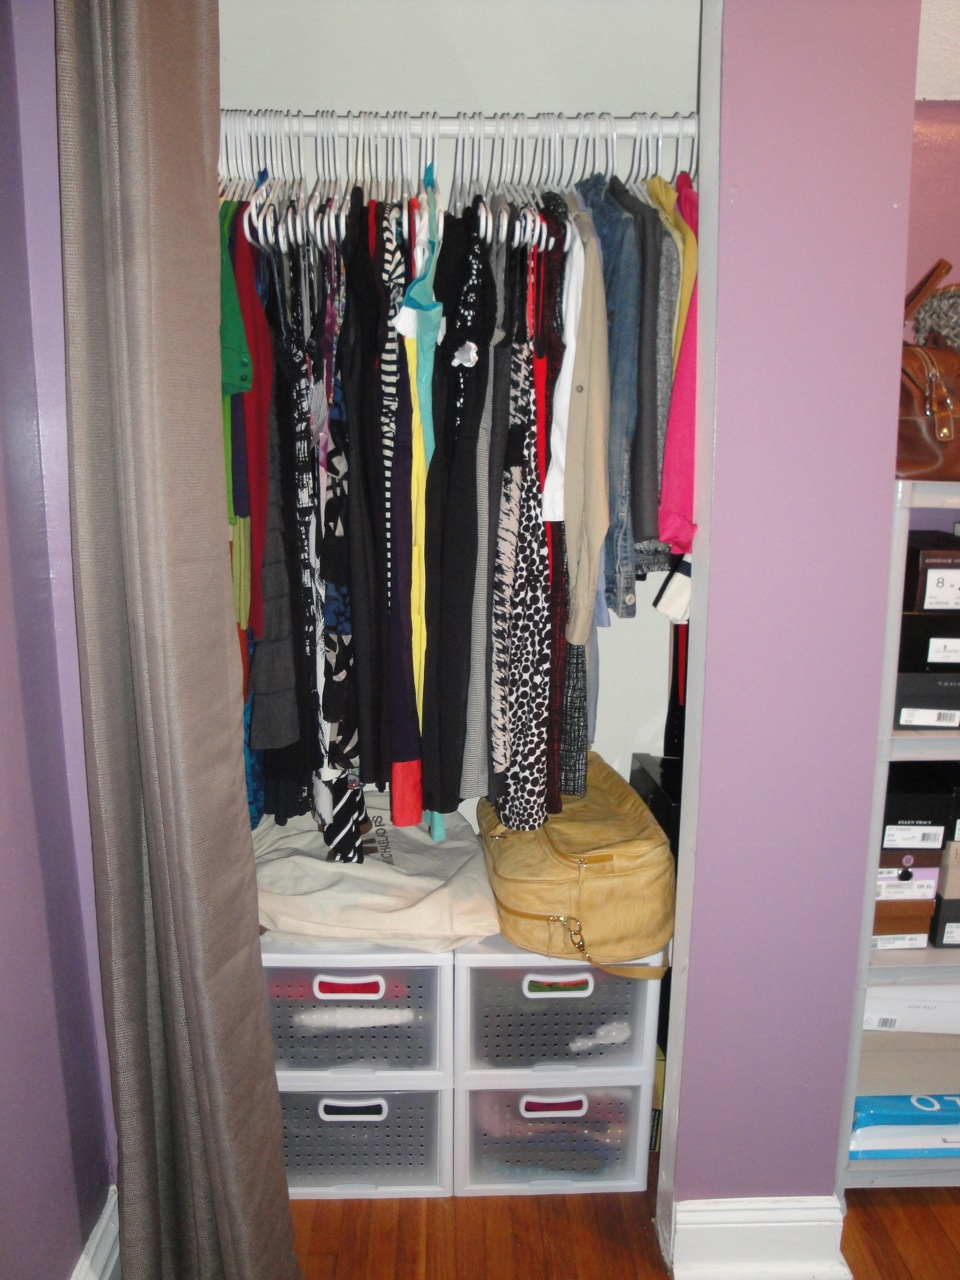 Cheap Closet Organization Ideas Part - 22: The Newly Improved And Organized Closet. L To R: Cardigans, Dresses  (casual, Dressy, Work), Blazers. Target Home Window Panel ($24.99) On A Rod  ($9.99) Add